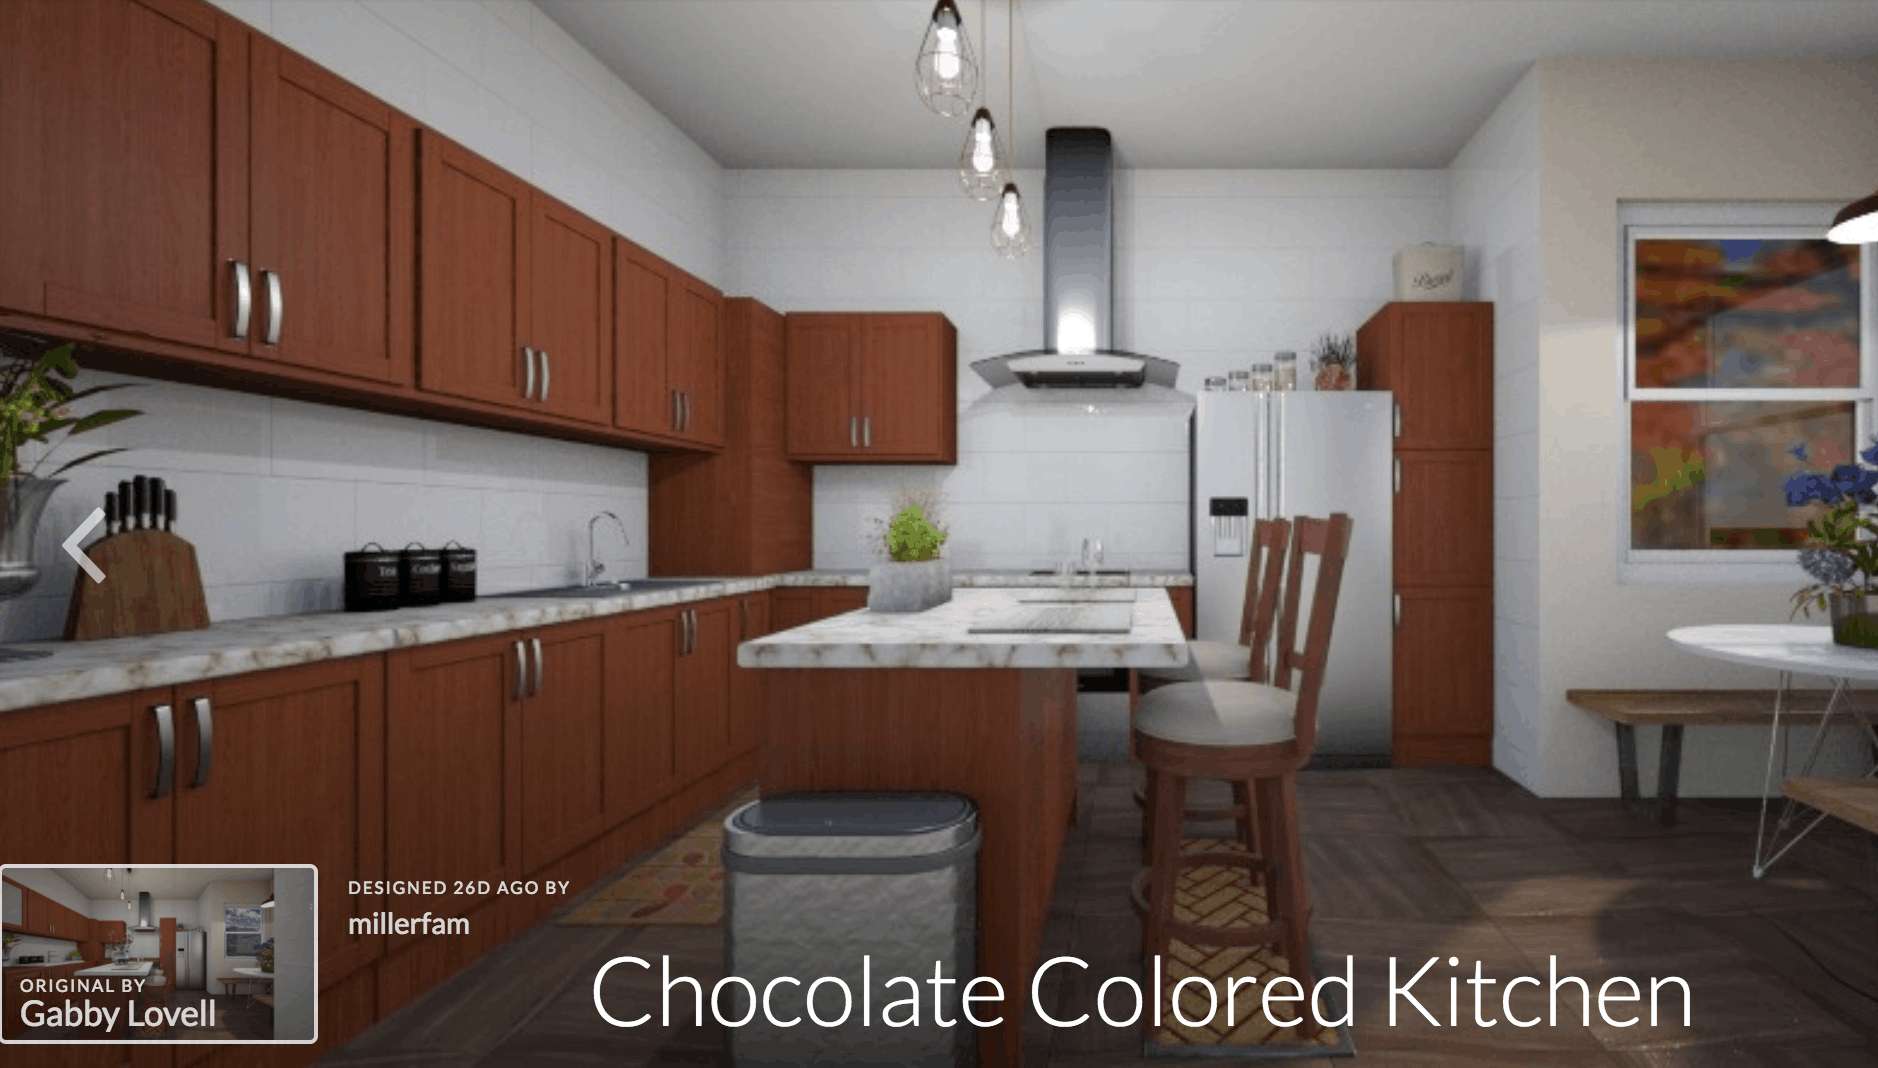 16 Best line Kitchen Design Software Options Free & Paid